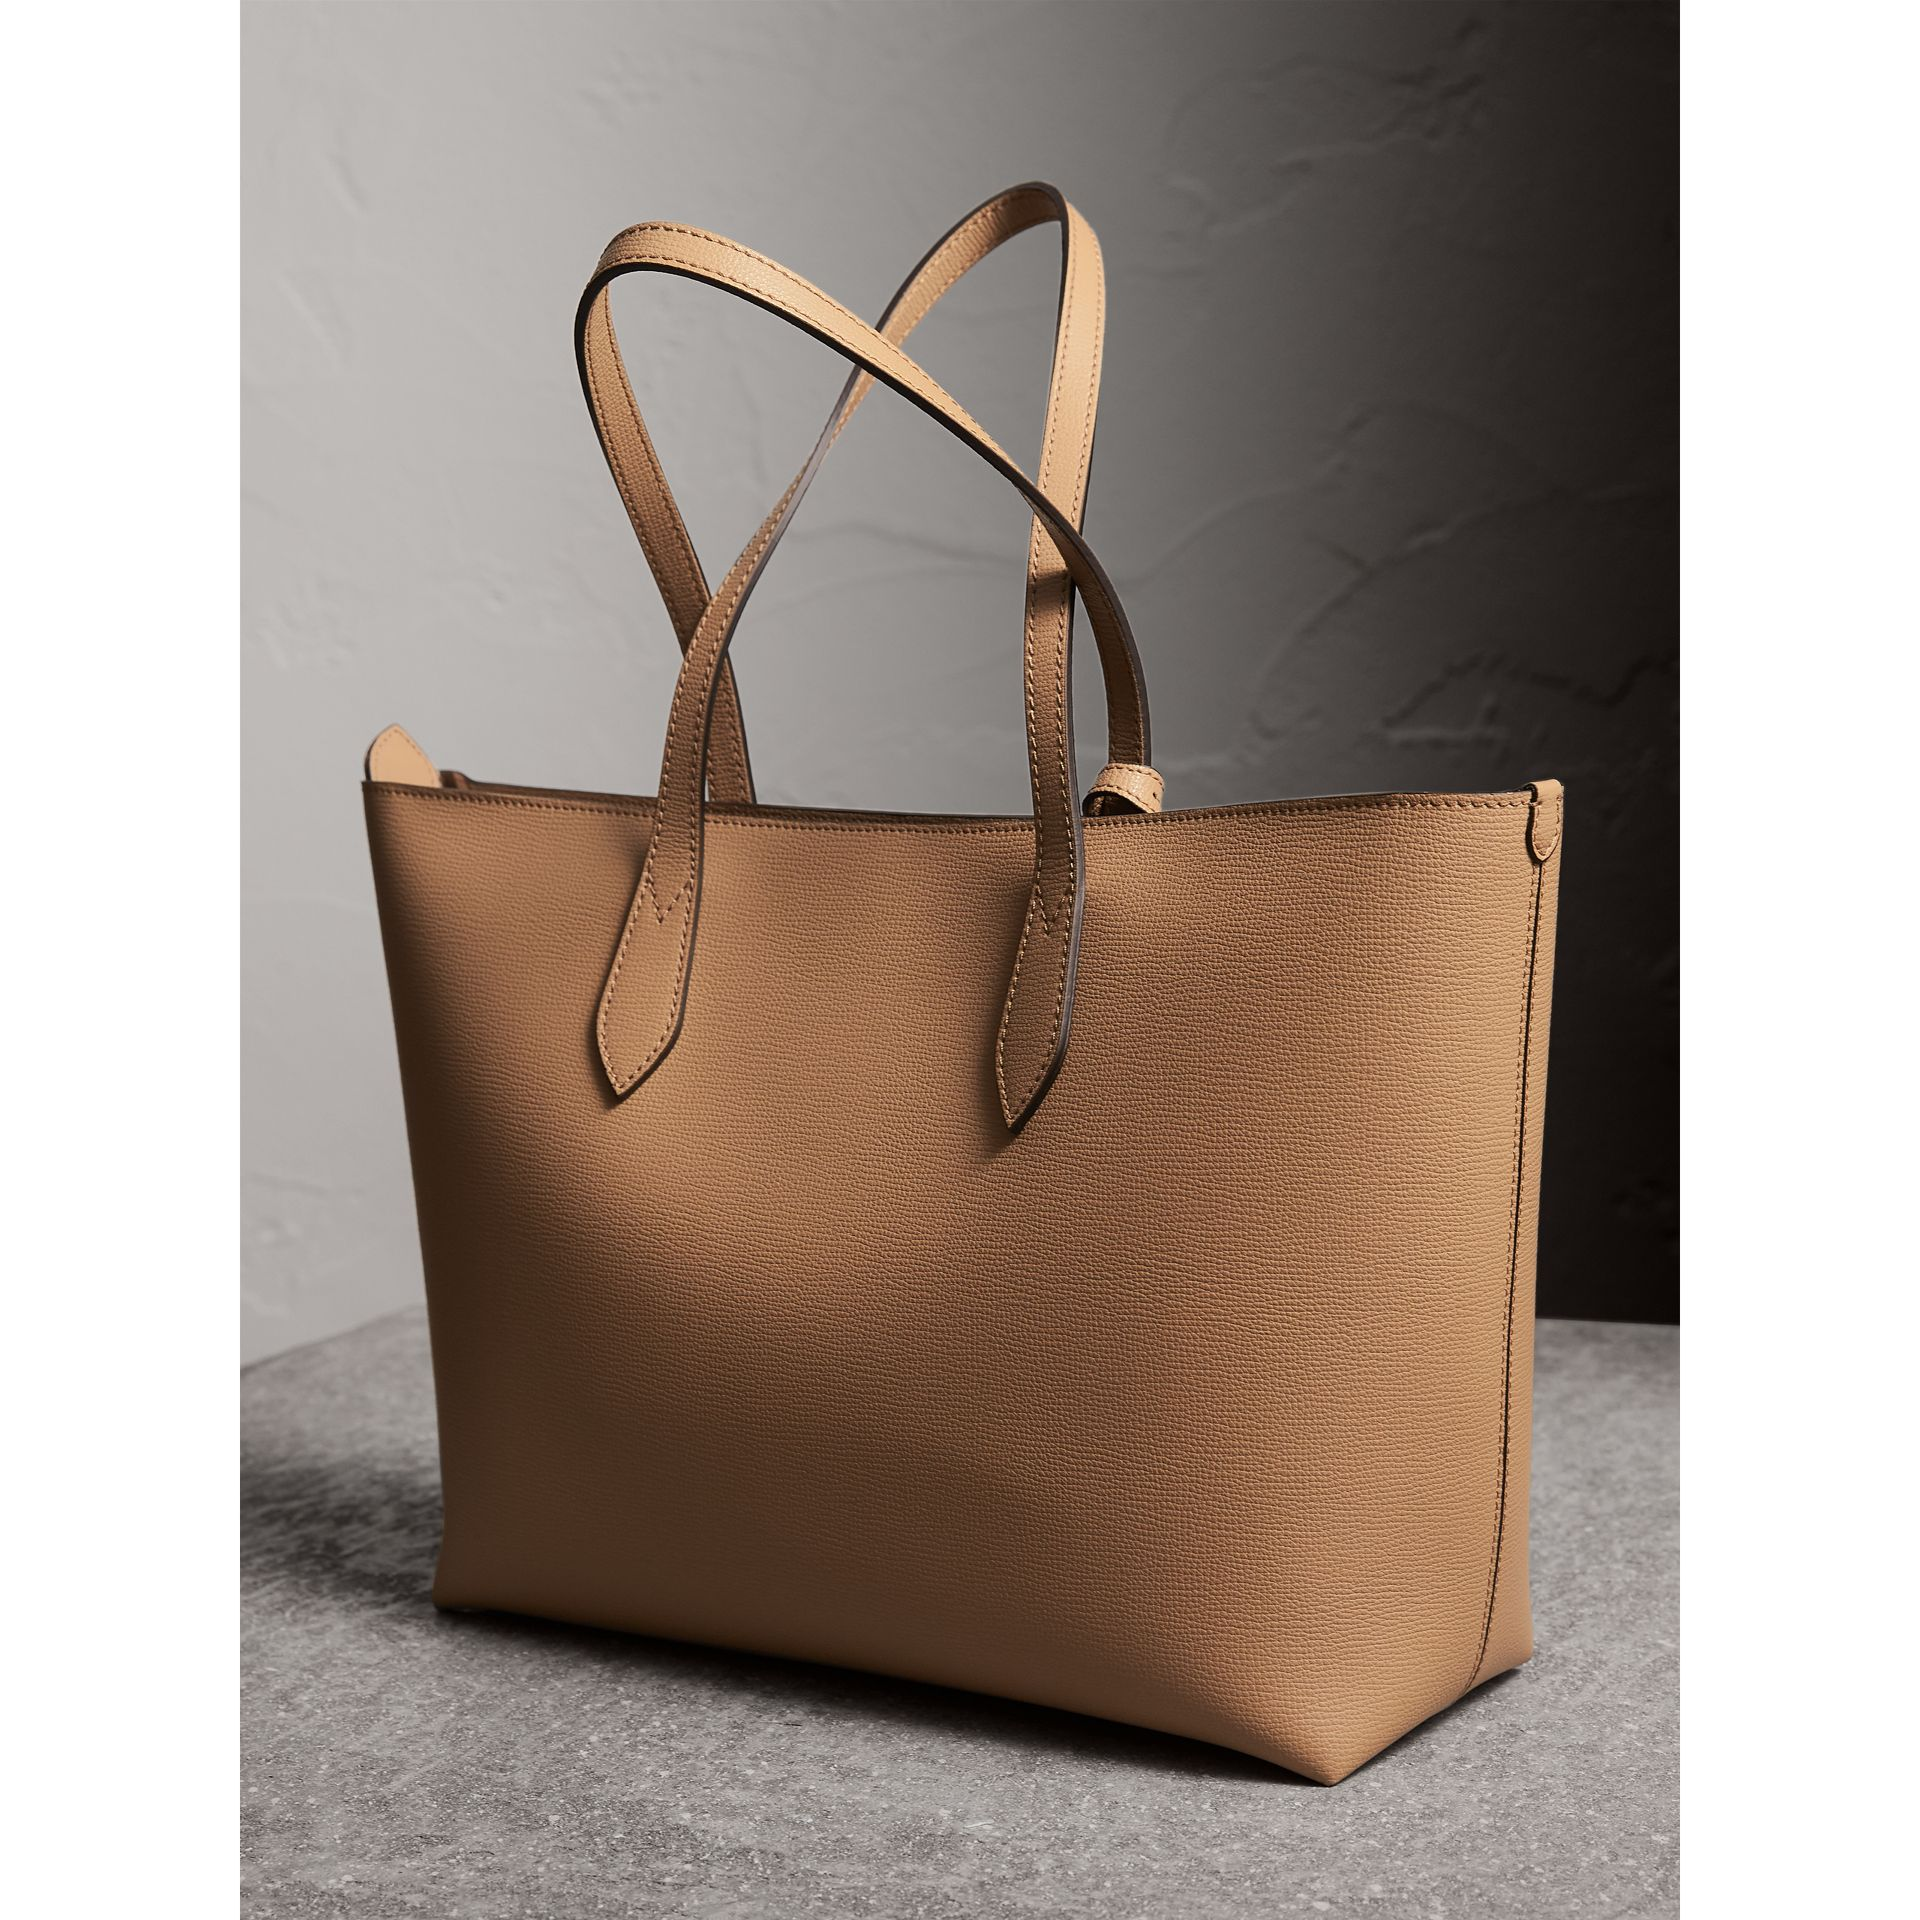 Medium Coated Leather Tote in Mid Camel - Women | Burberry Australia - gallery image 4